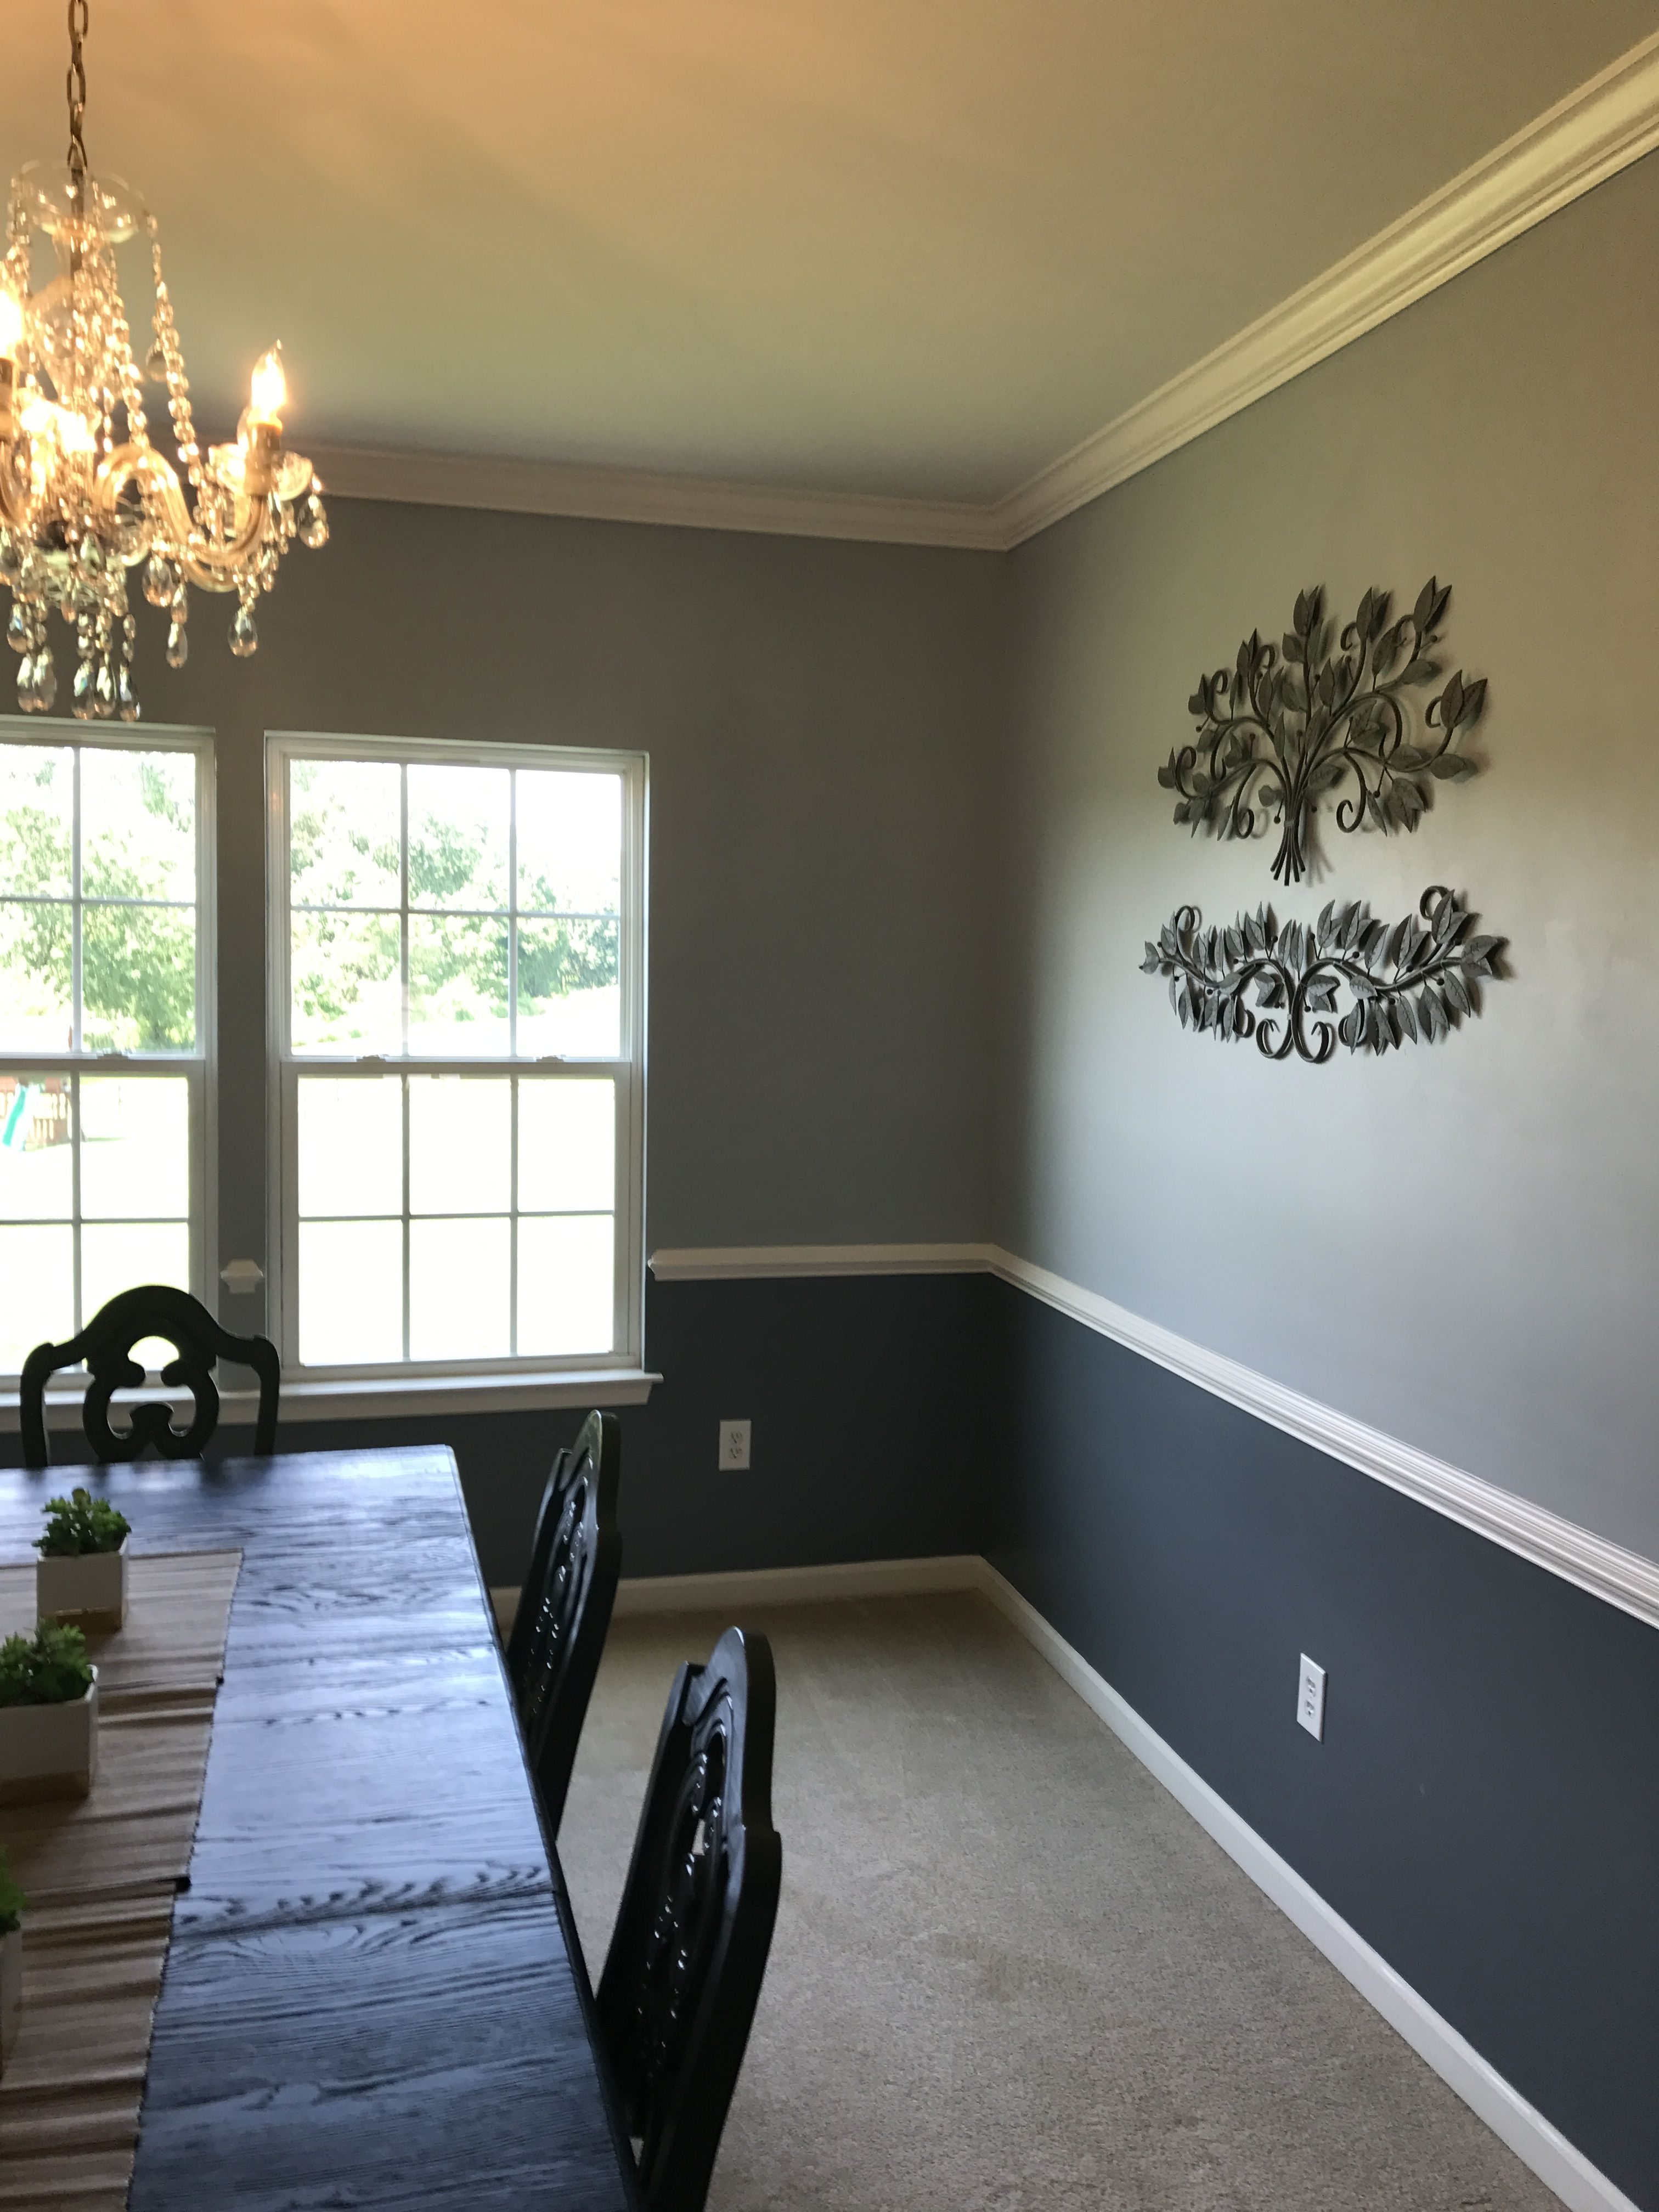 Dining Room Sherwin Williams Downing Slate Chair Rail Sherwin Williams Colonial Revival Gray Front Room Colonial Revival Sherwin Williams Gray